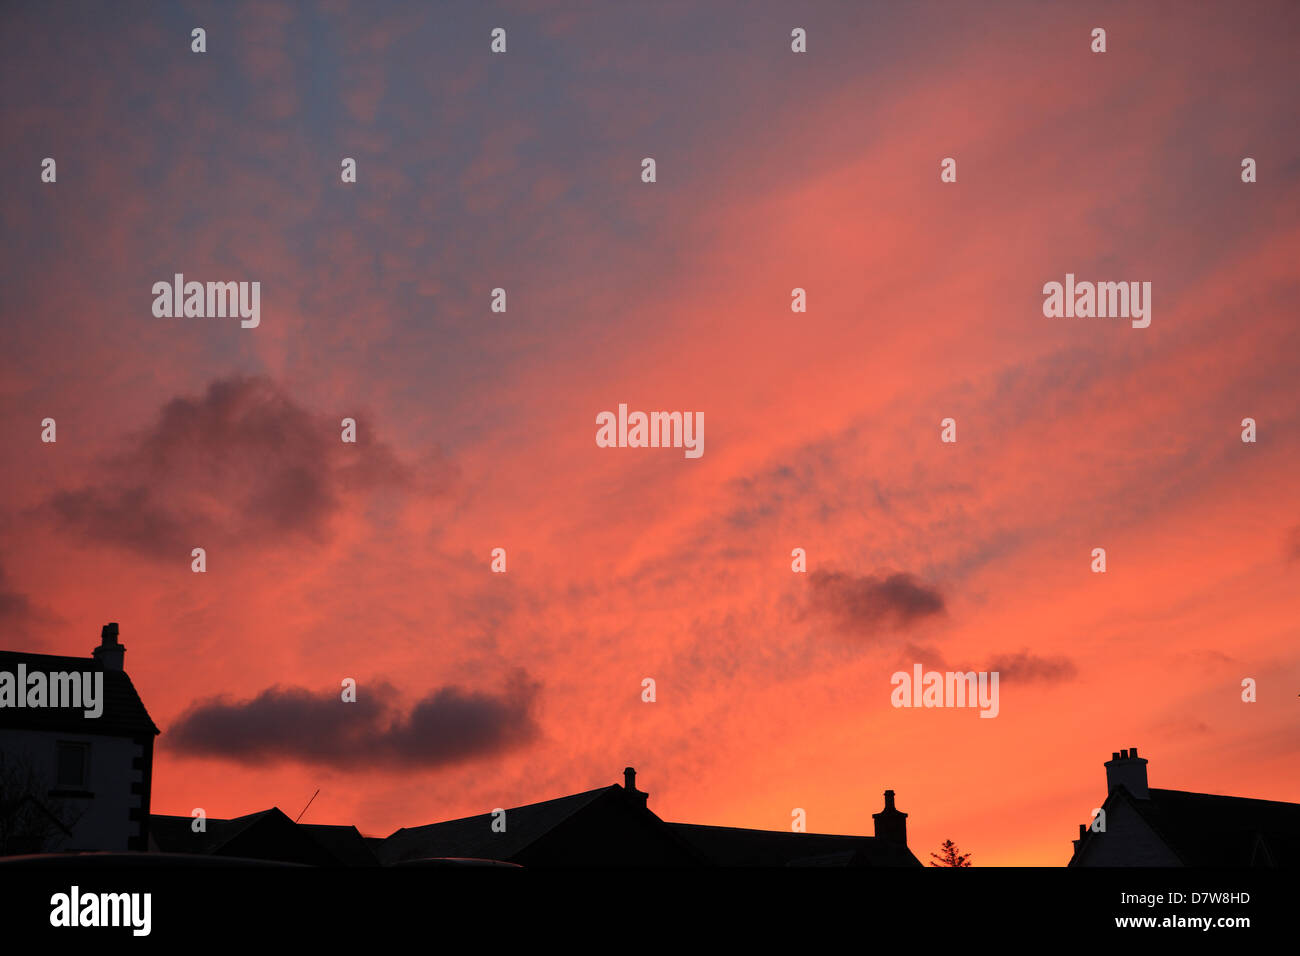 orange-sky-over-silhouetted-rooftops-in-